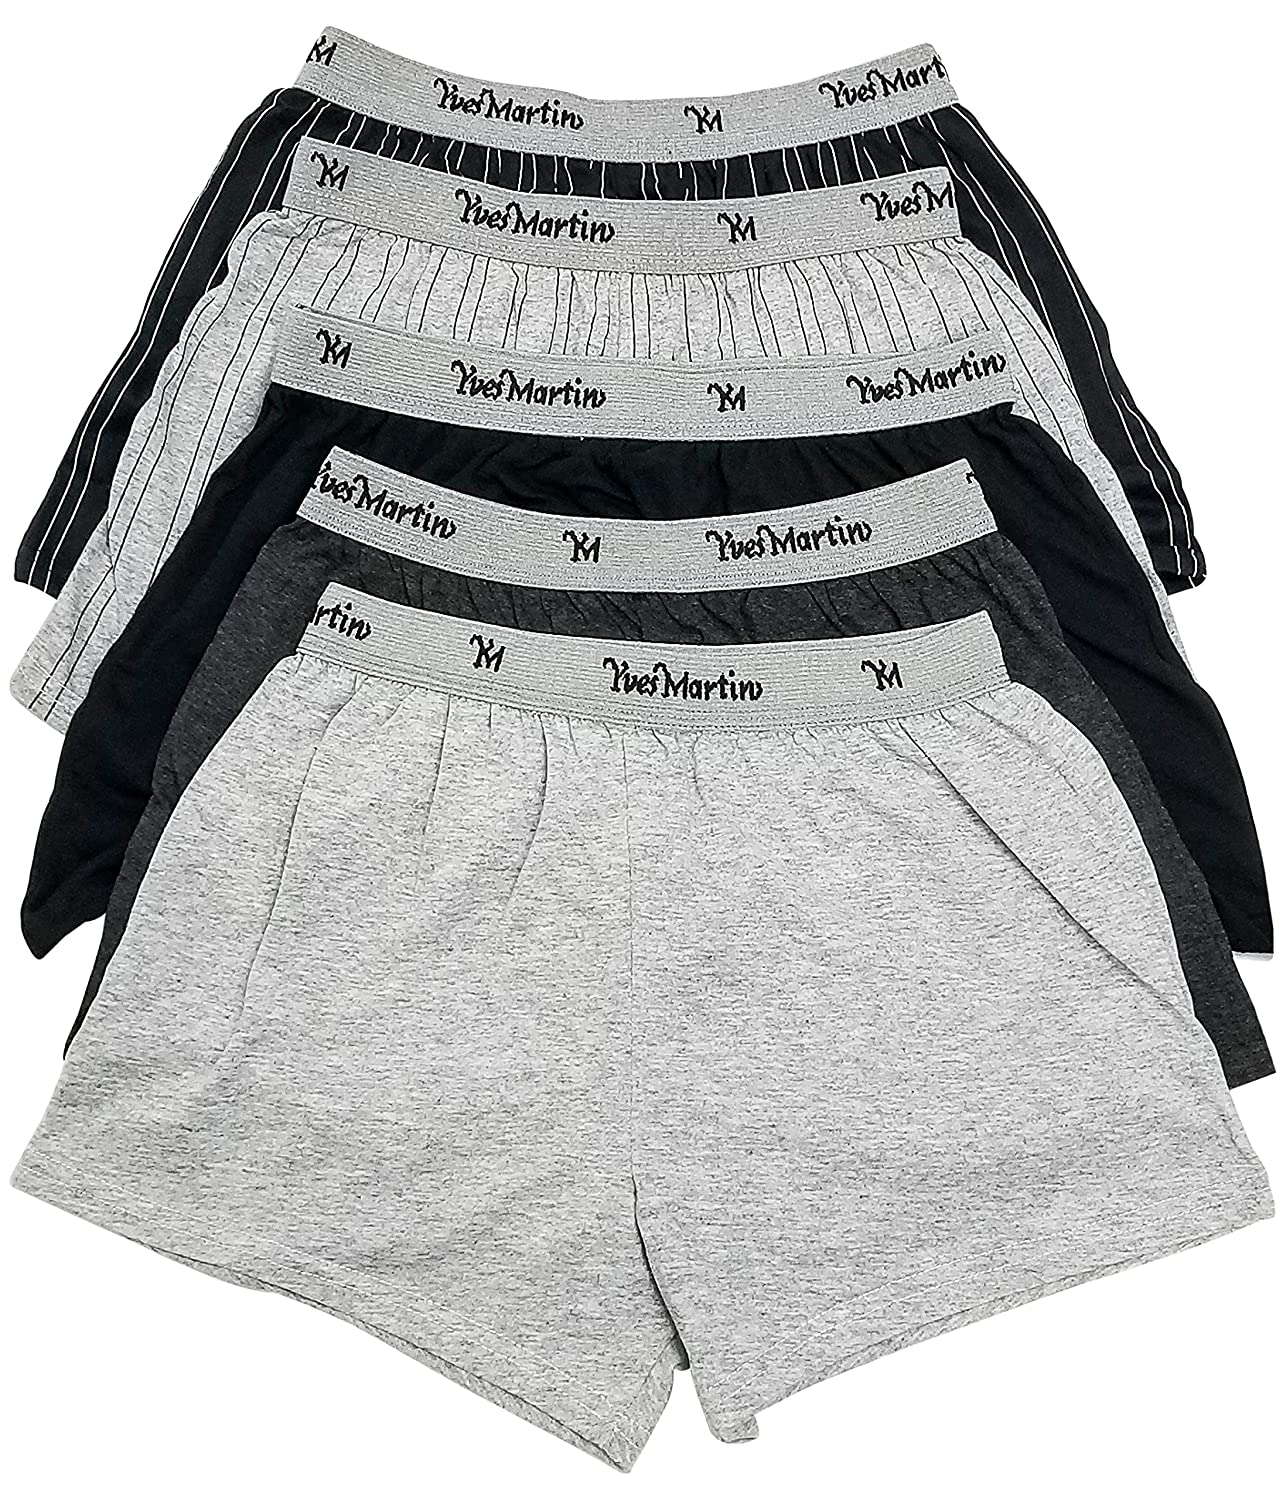 COLLECTION YVES MARTIN | Boys Boxers (Kids)- Jersey / 5 Pack (1234/5) Yves Martin Underwear Inc.